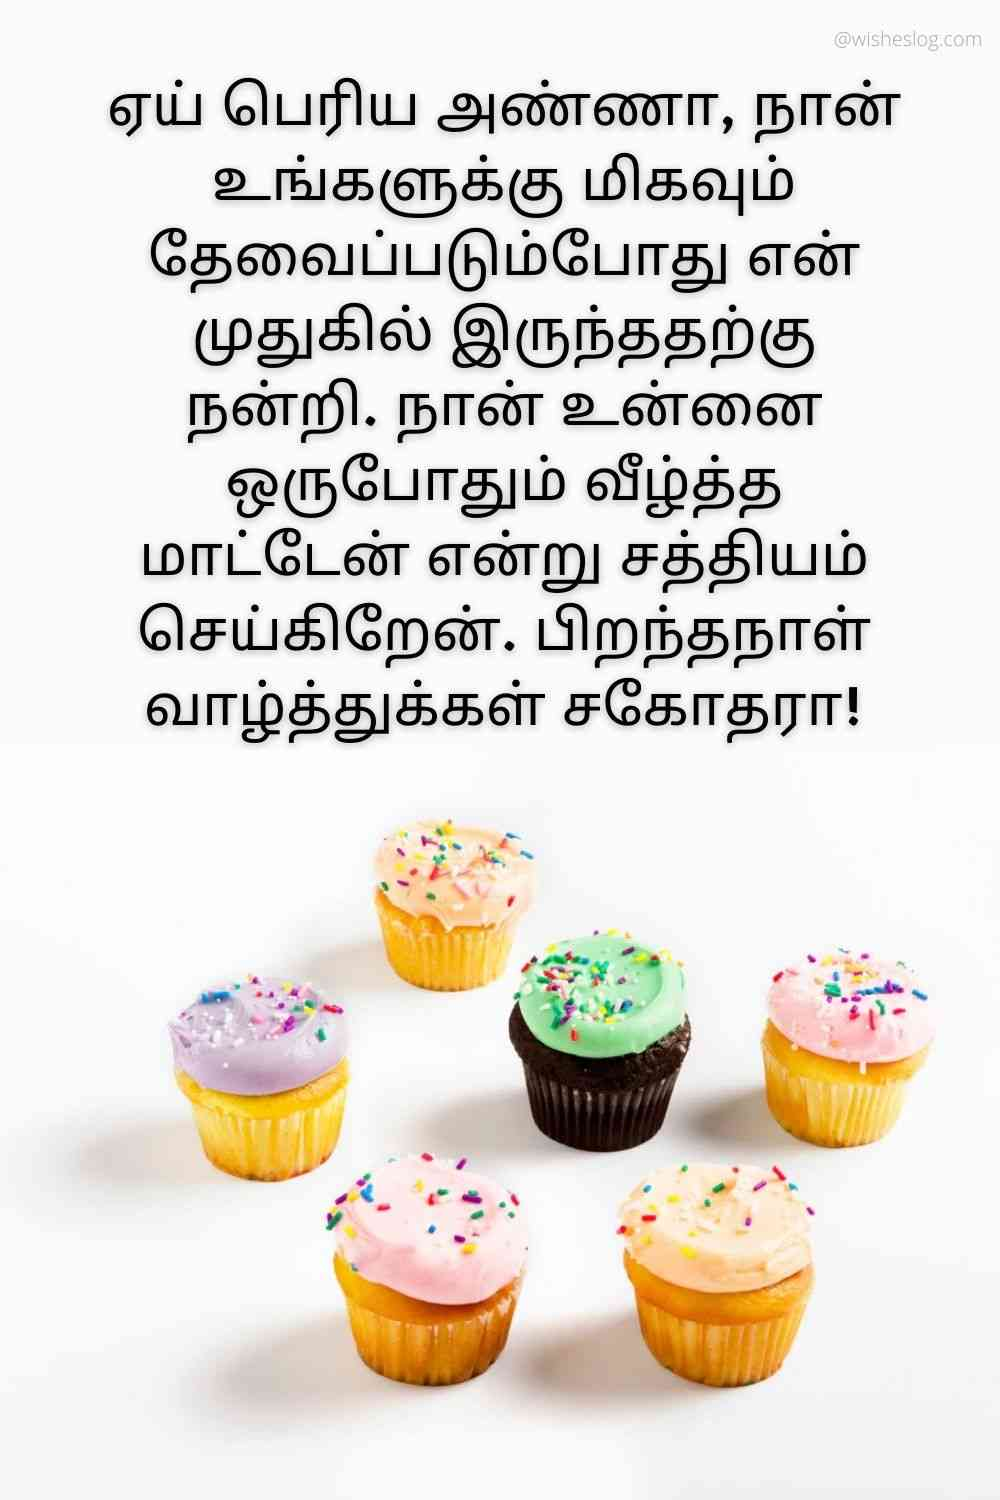 happy birthday images in tamil for elder brother